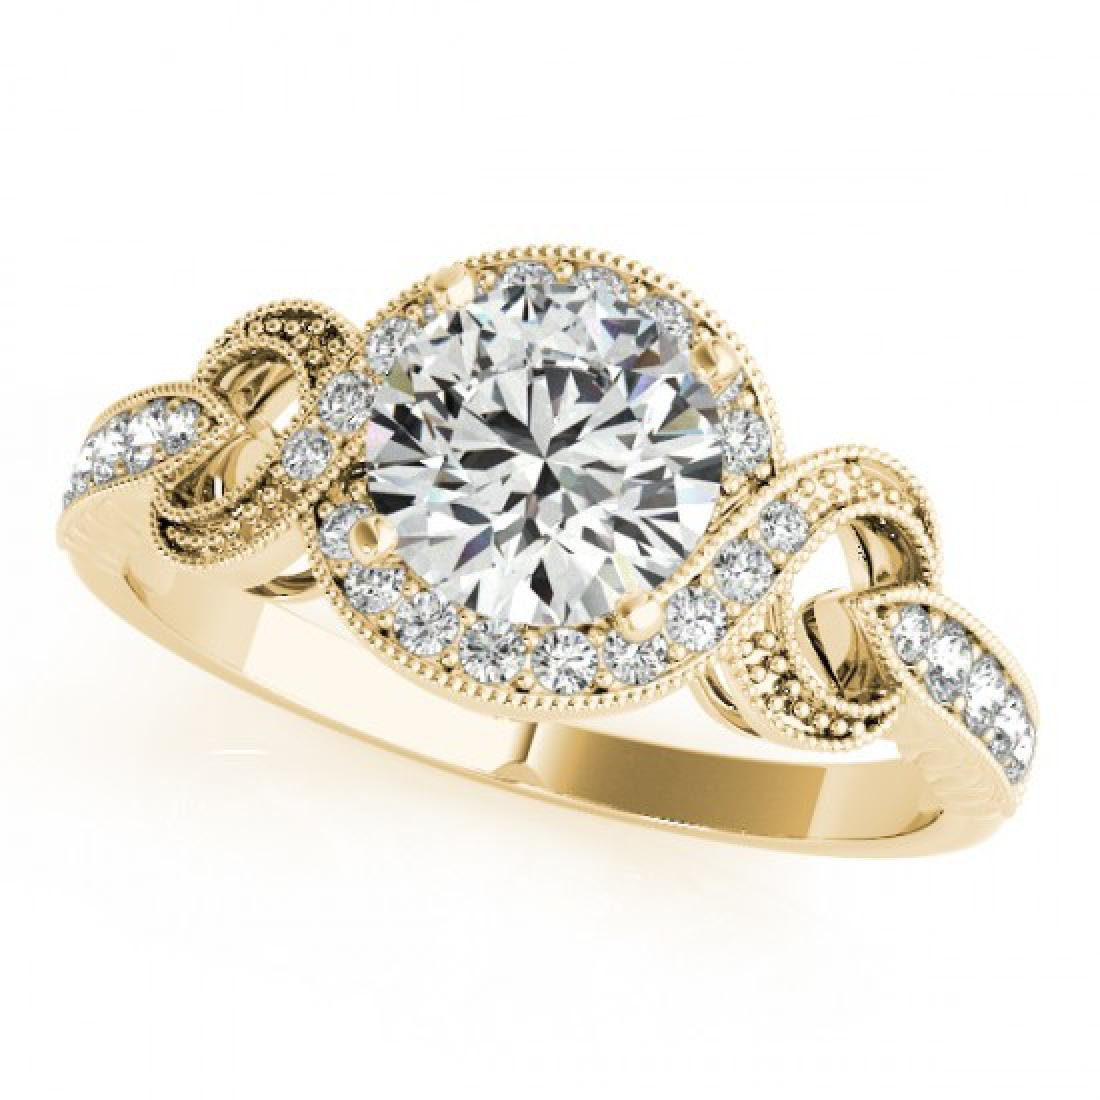 0.8 CTW Certified VS/SI Diamond Solitaire Halo Ring 14K - 2